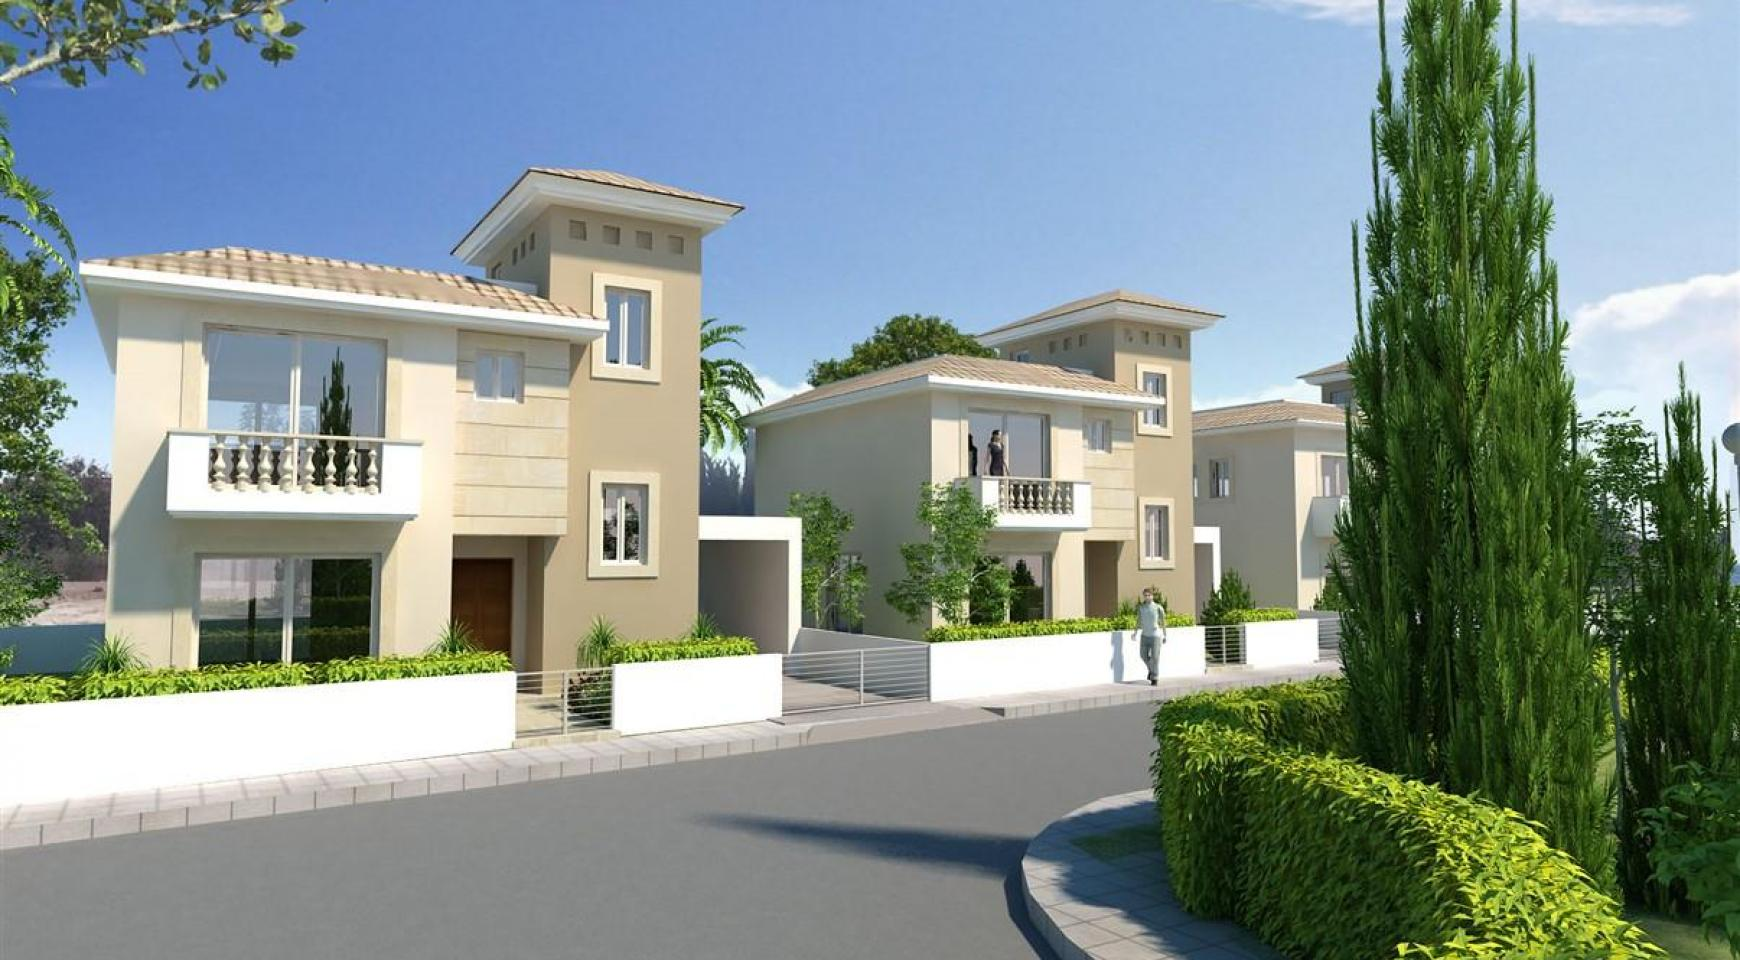 3 Bedroom Villa within a New Project - 23